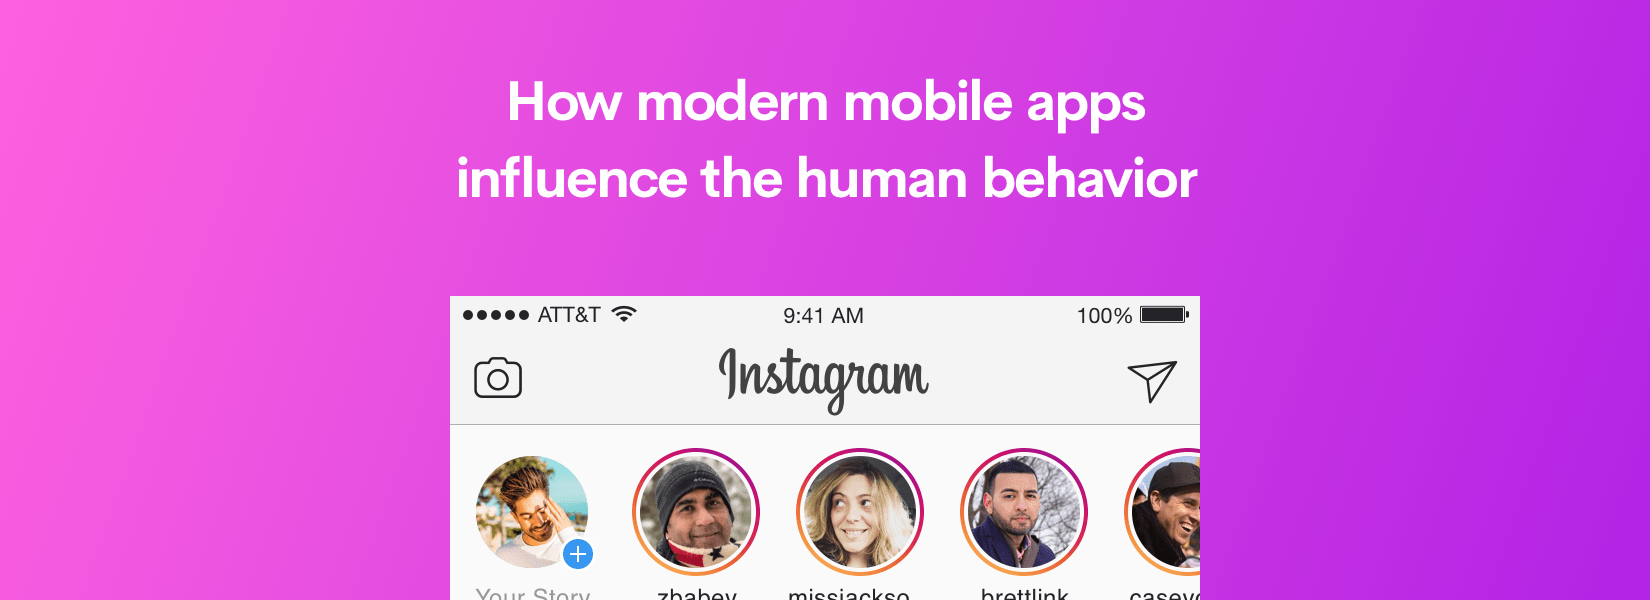 How modern mobile apps influence the human behavior